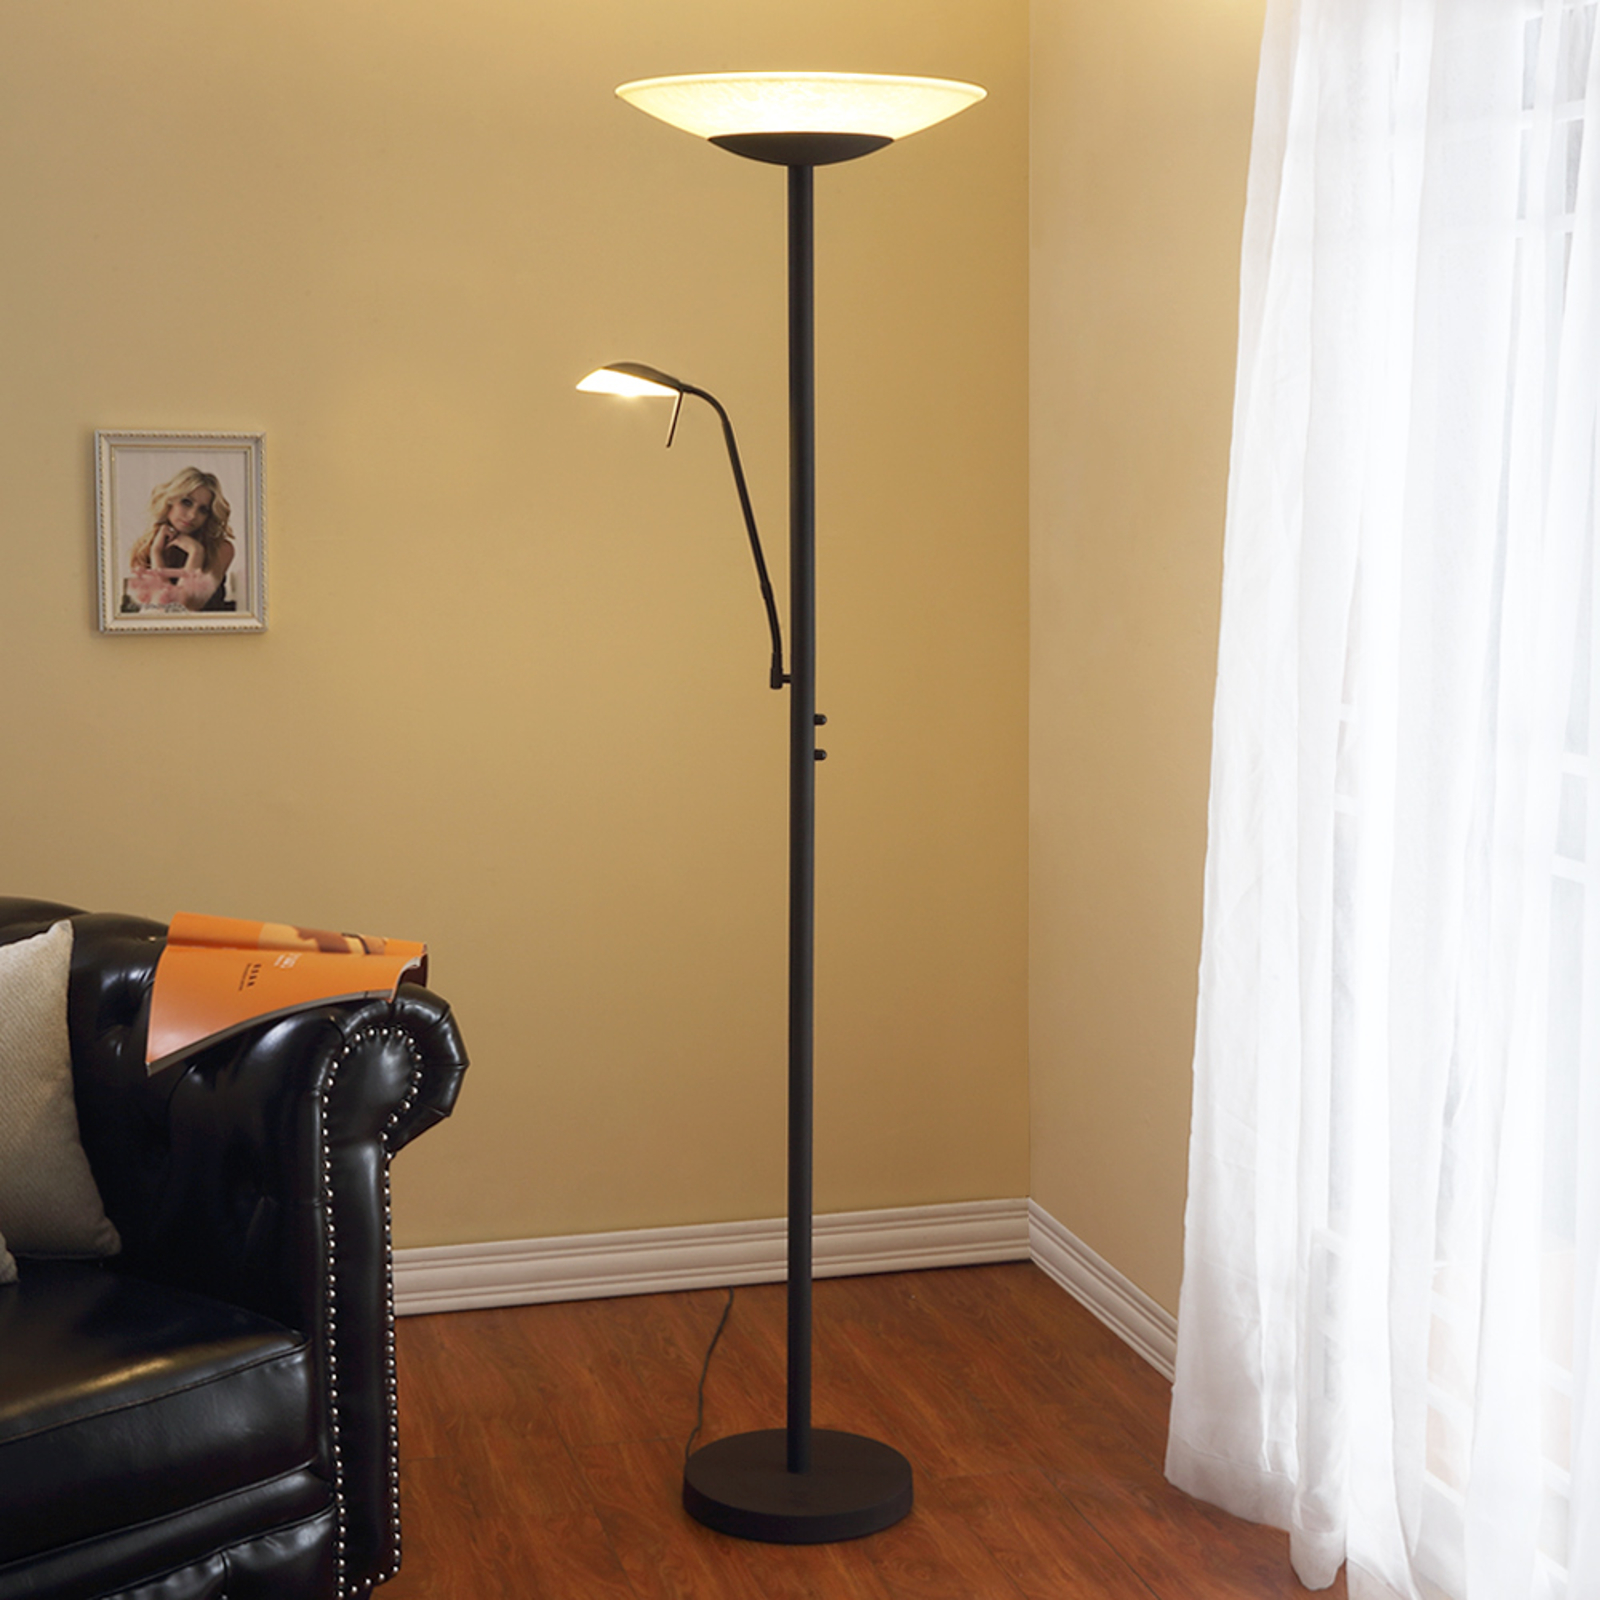 Lampadaire indirect LED Ragna liseuse, rouille